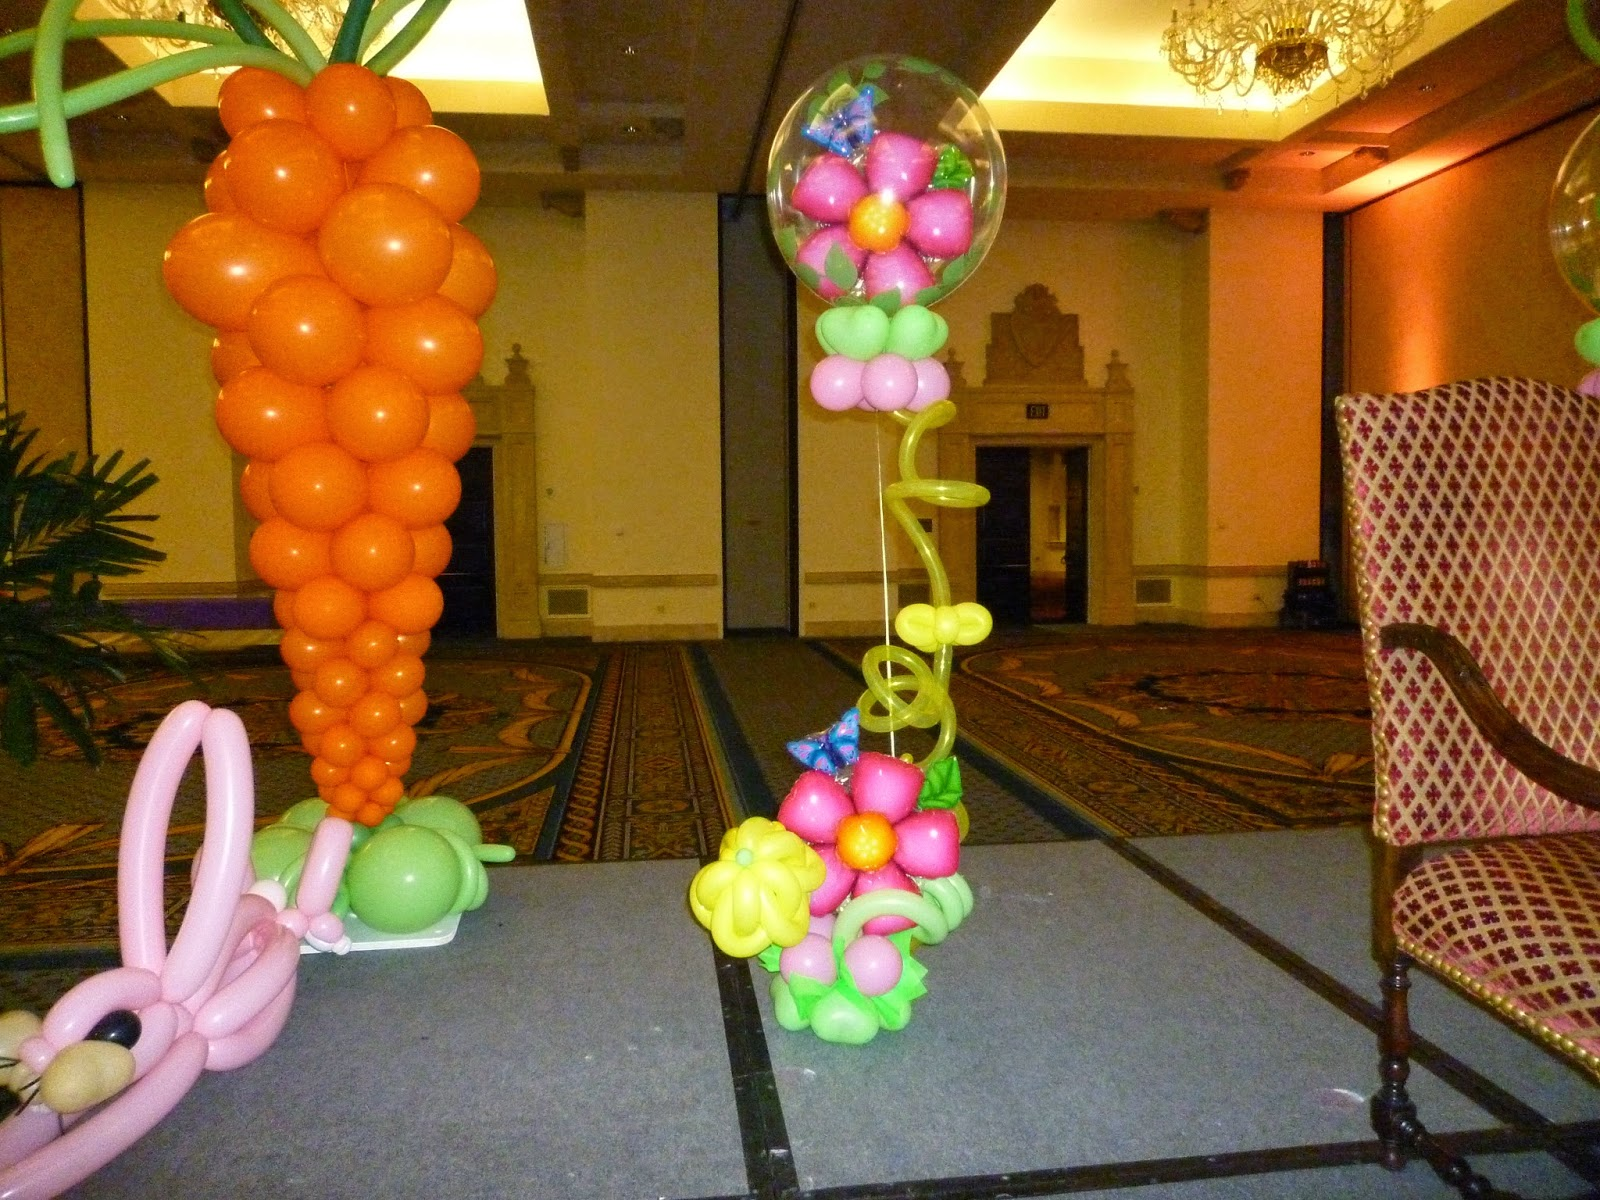 Easter Bunny photo shoot event decoration, Easter event decoration ideas.